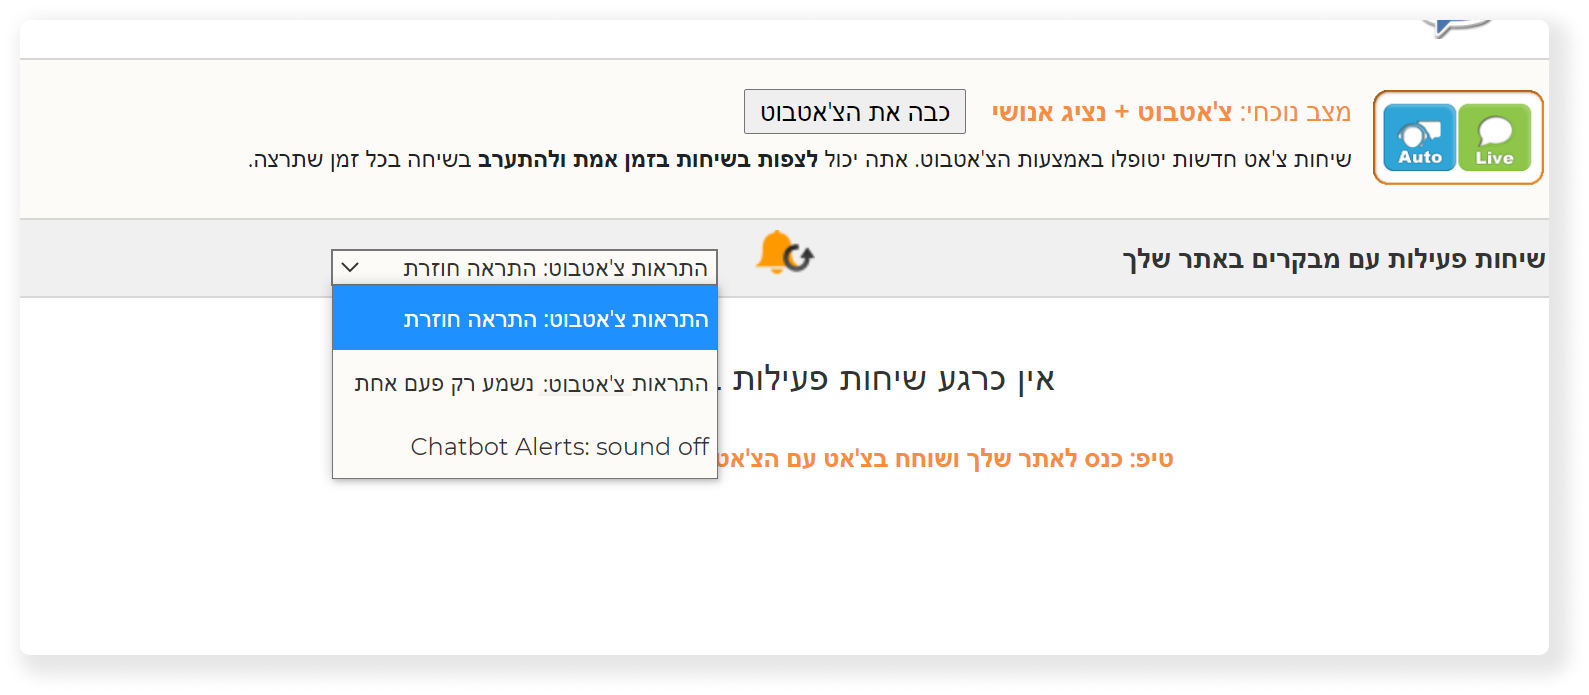 live chat turn off repeated alerts